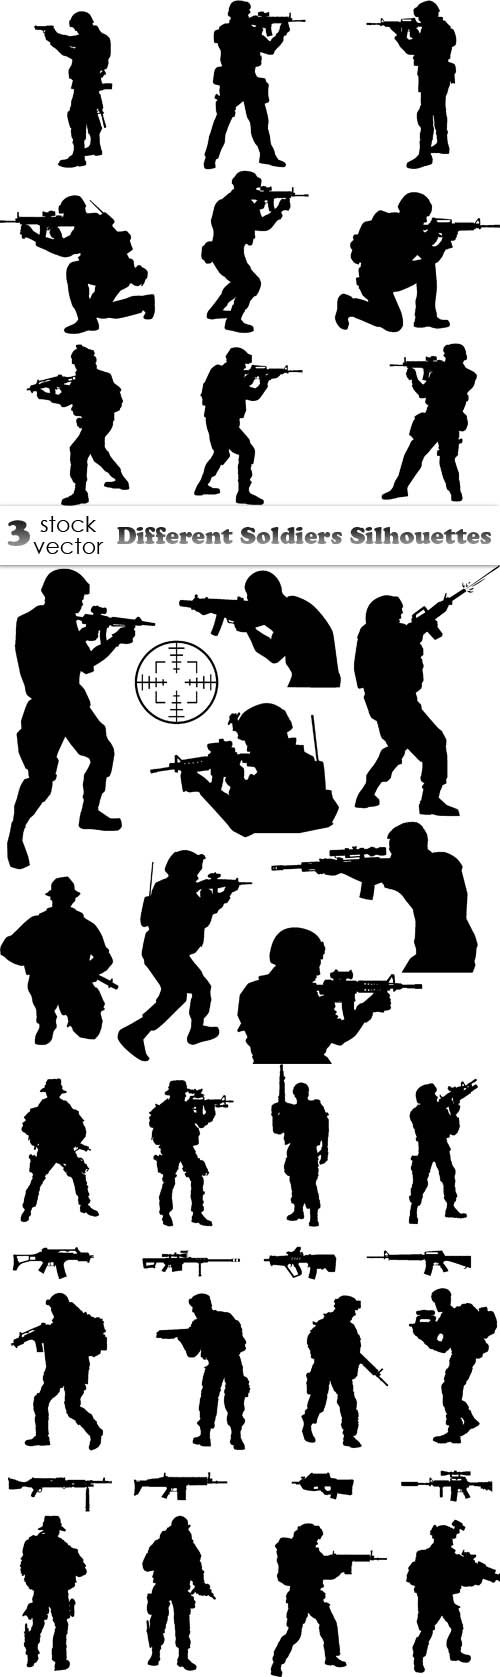 Vectors - Different Soldiers Silhouettes